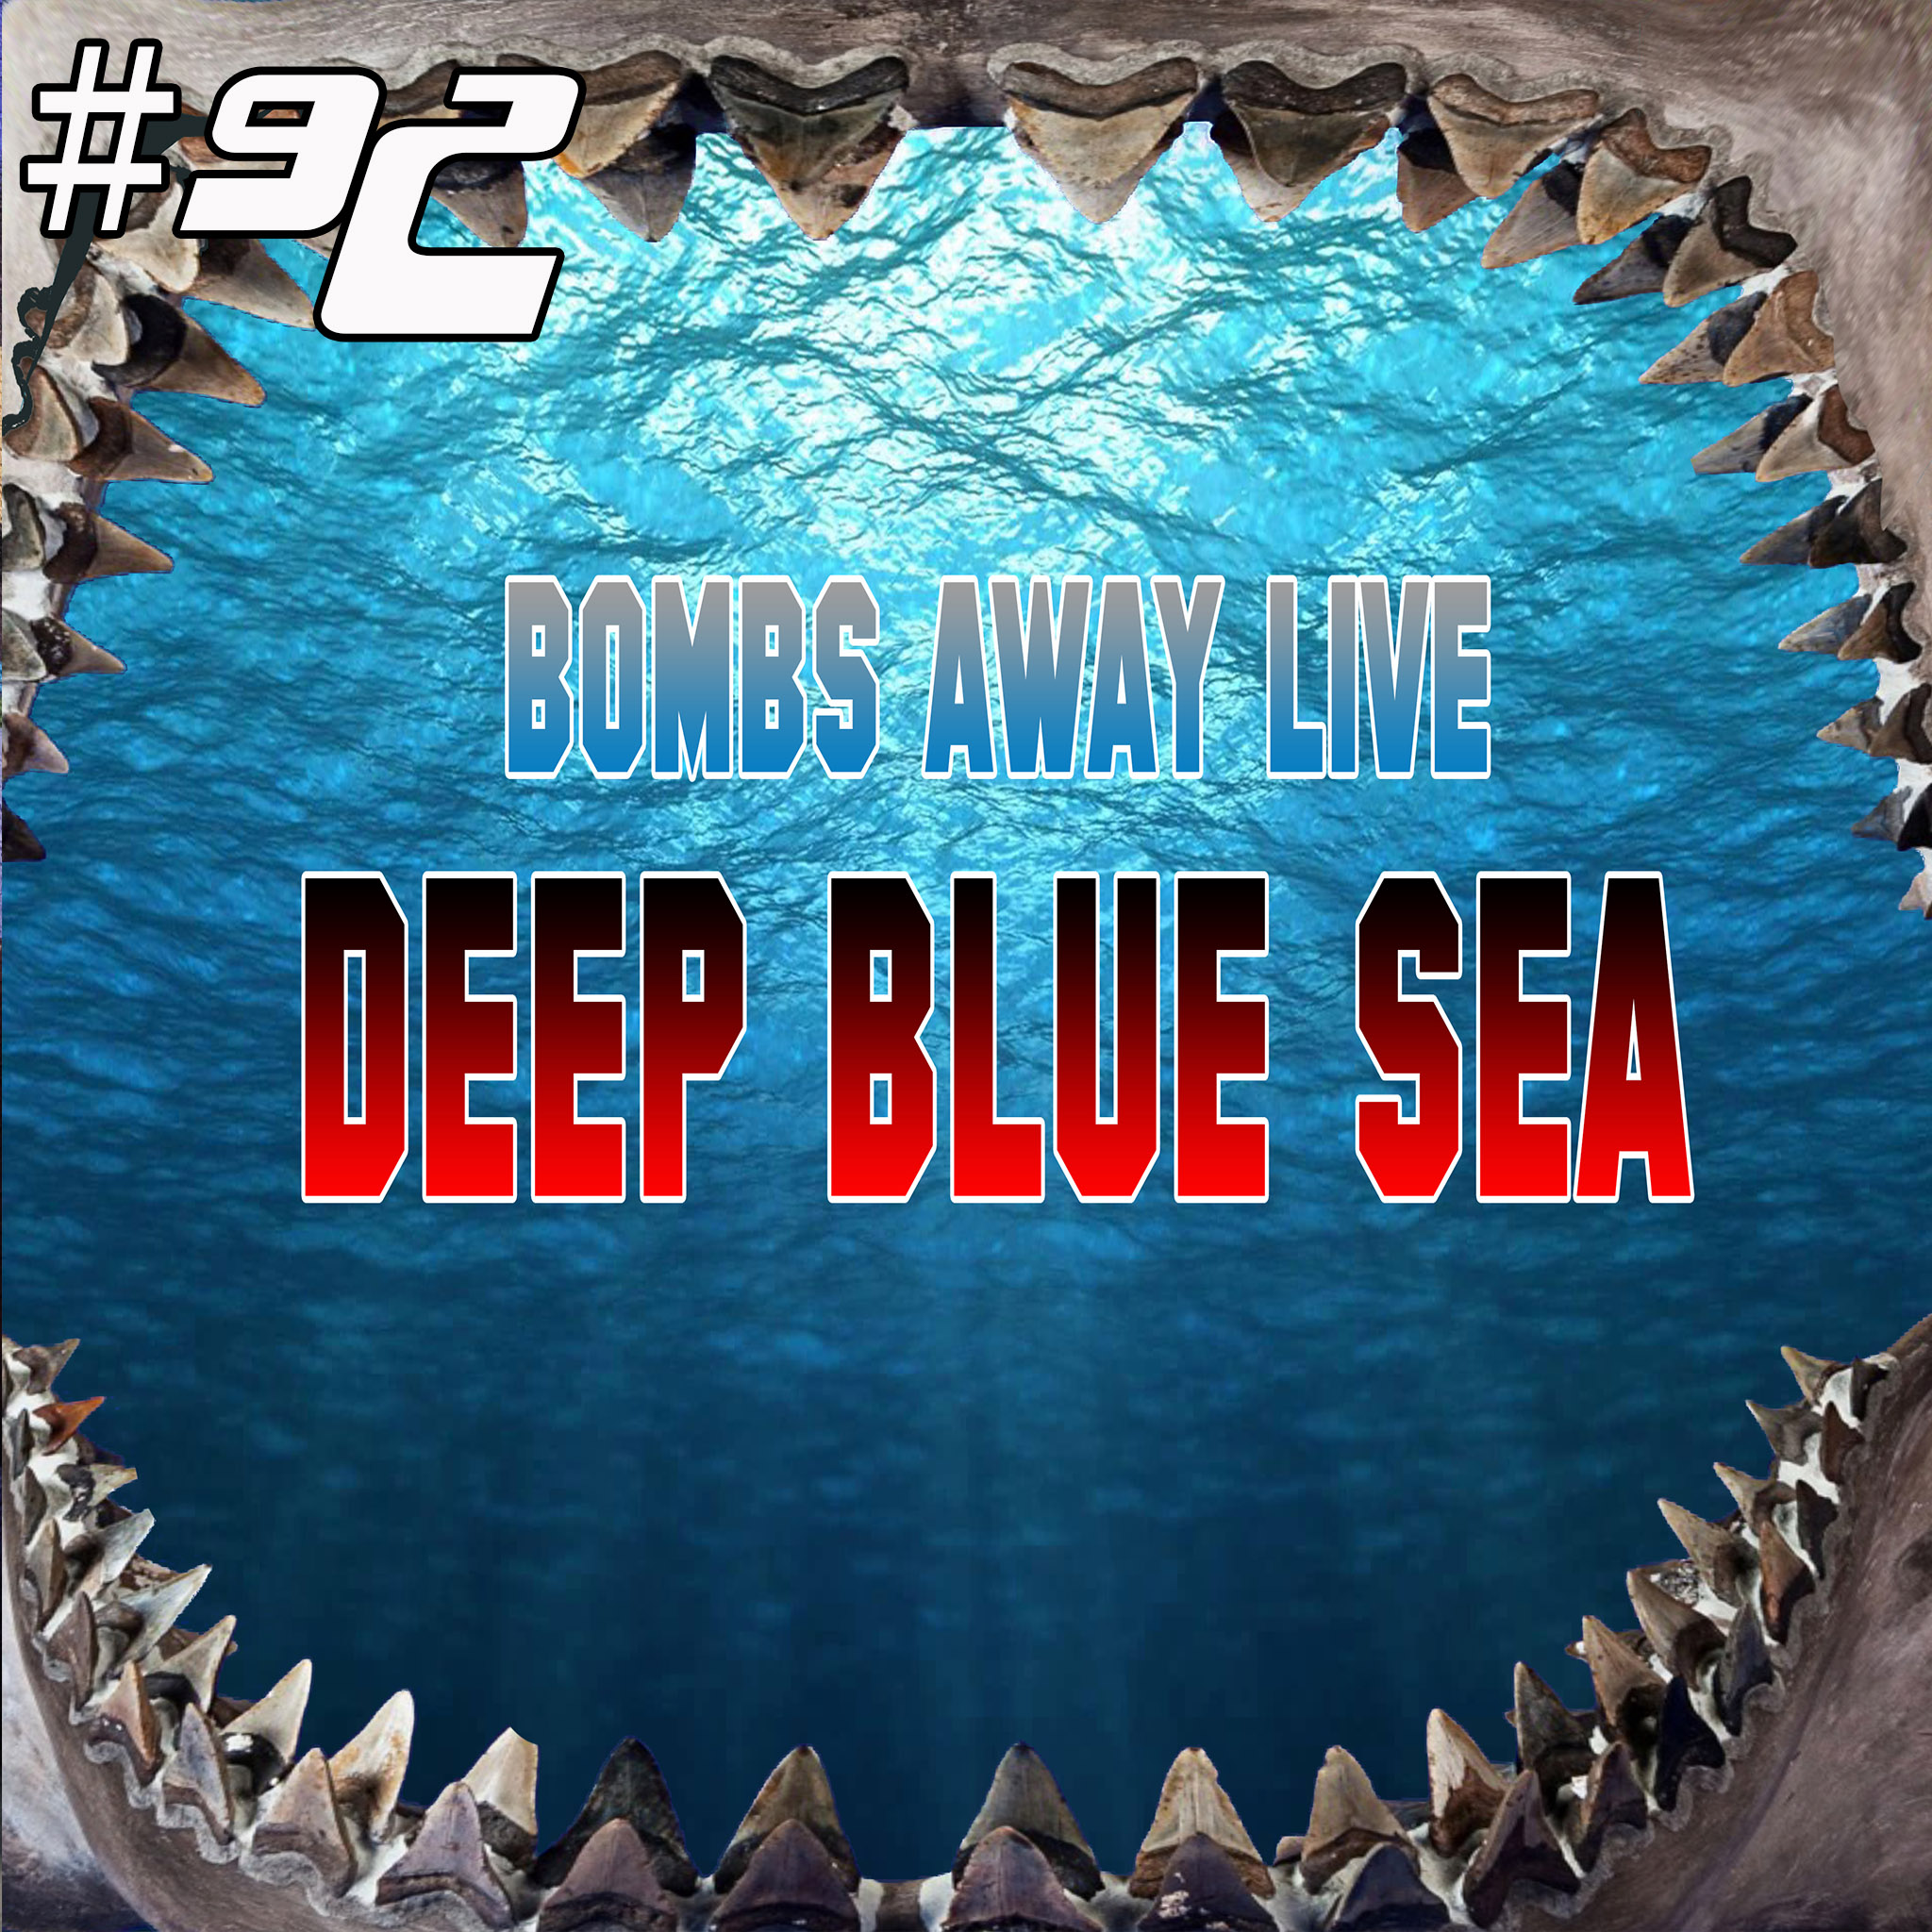 Episode 92 - Deep Blue Sea (1999) LIVE